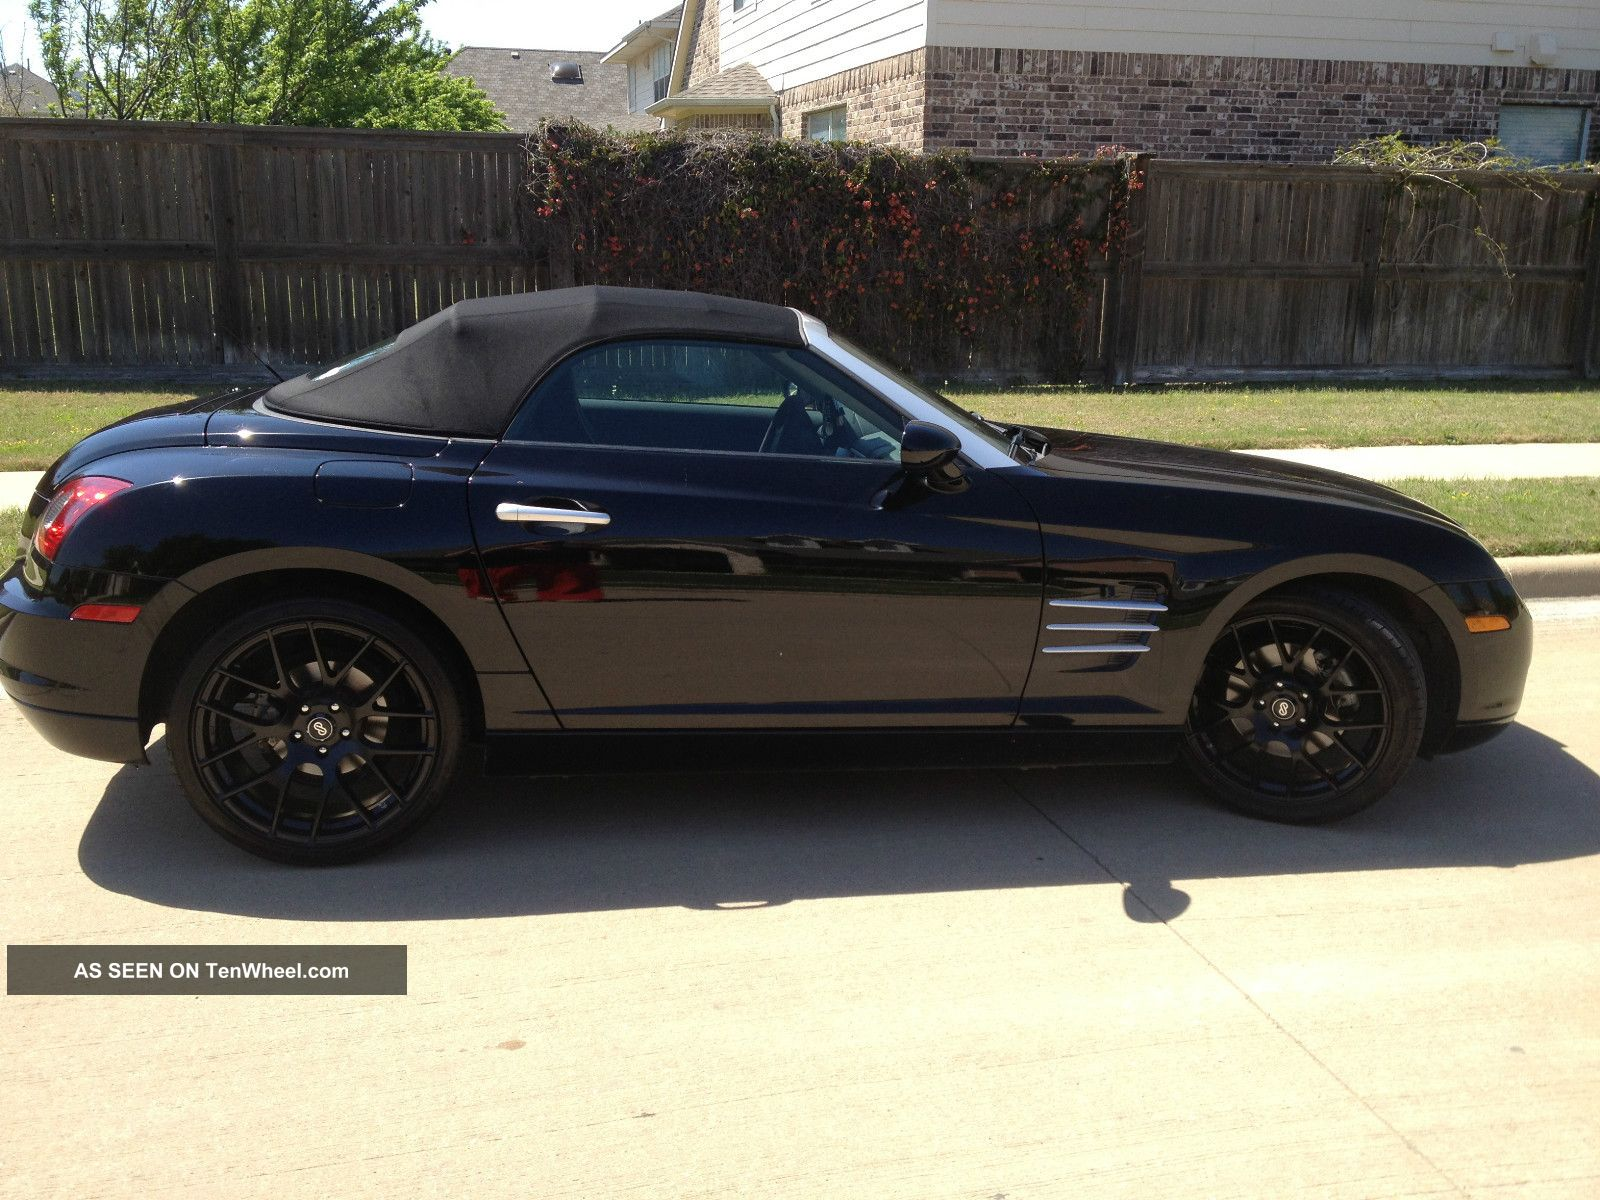 2006 Crossfire Limited Roadster Convertible Black Top